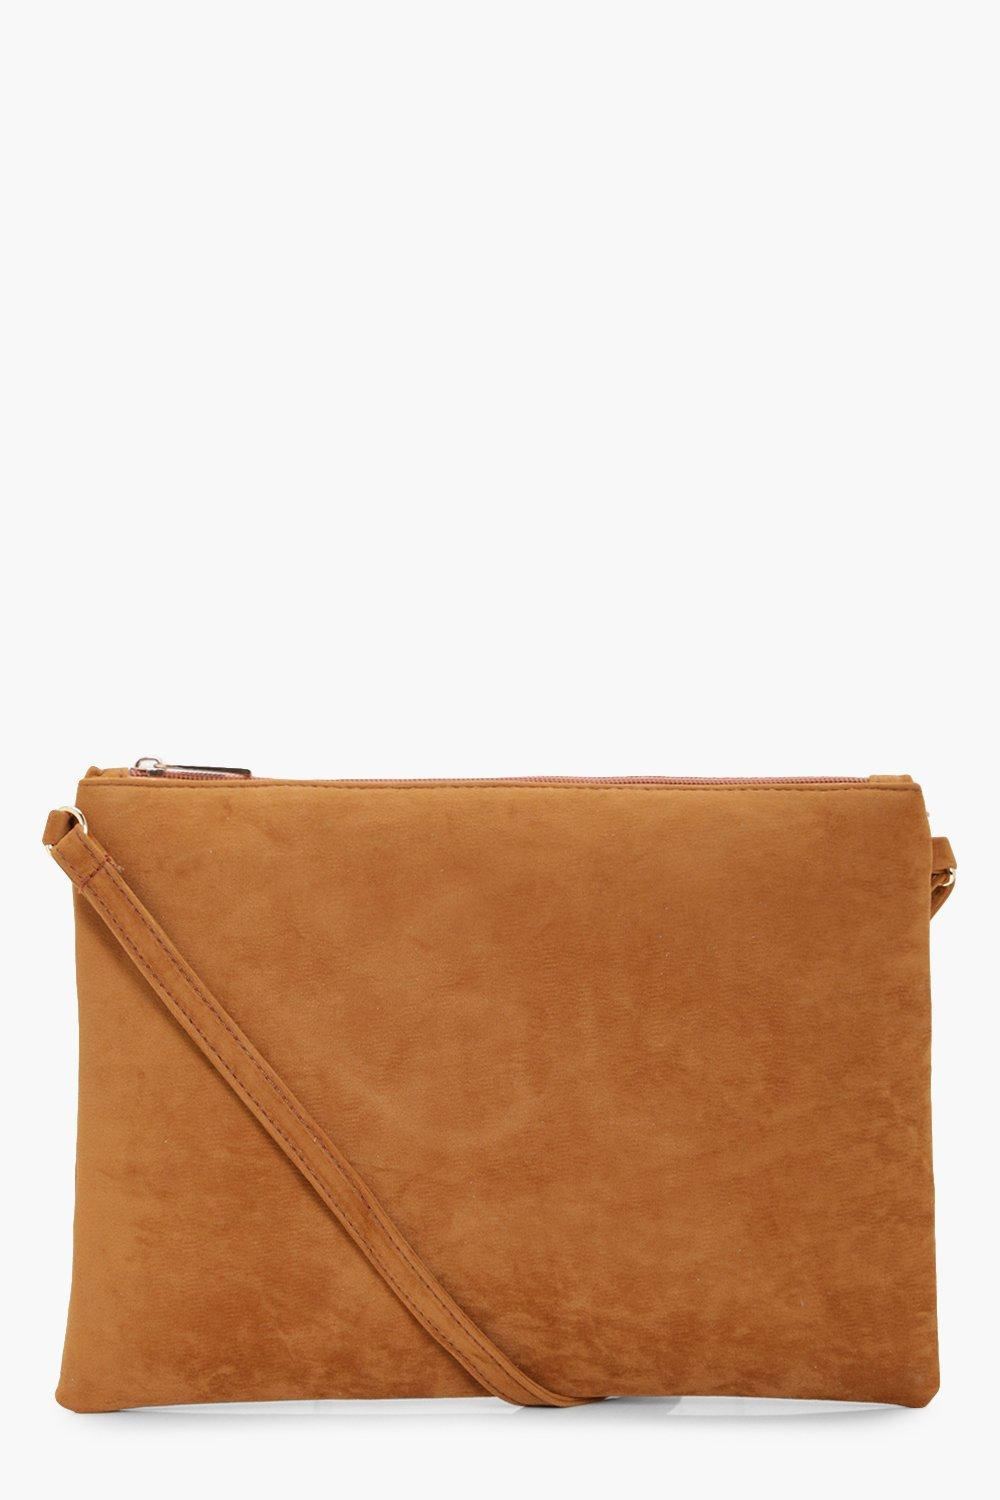 Suedette Cross Body Bag - tan - Katie Suedette Cro